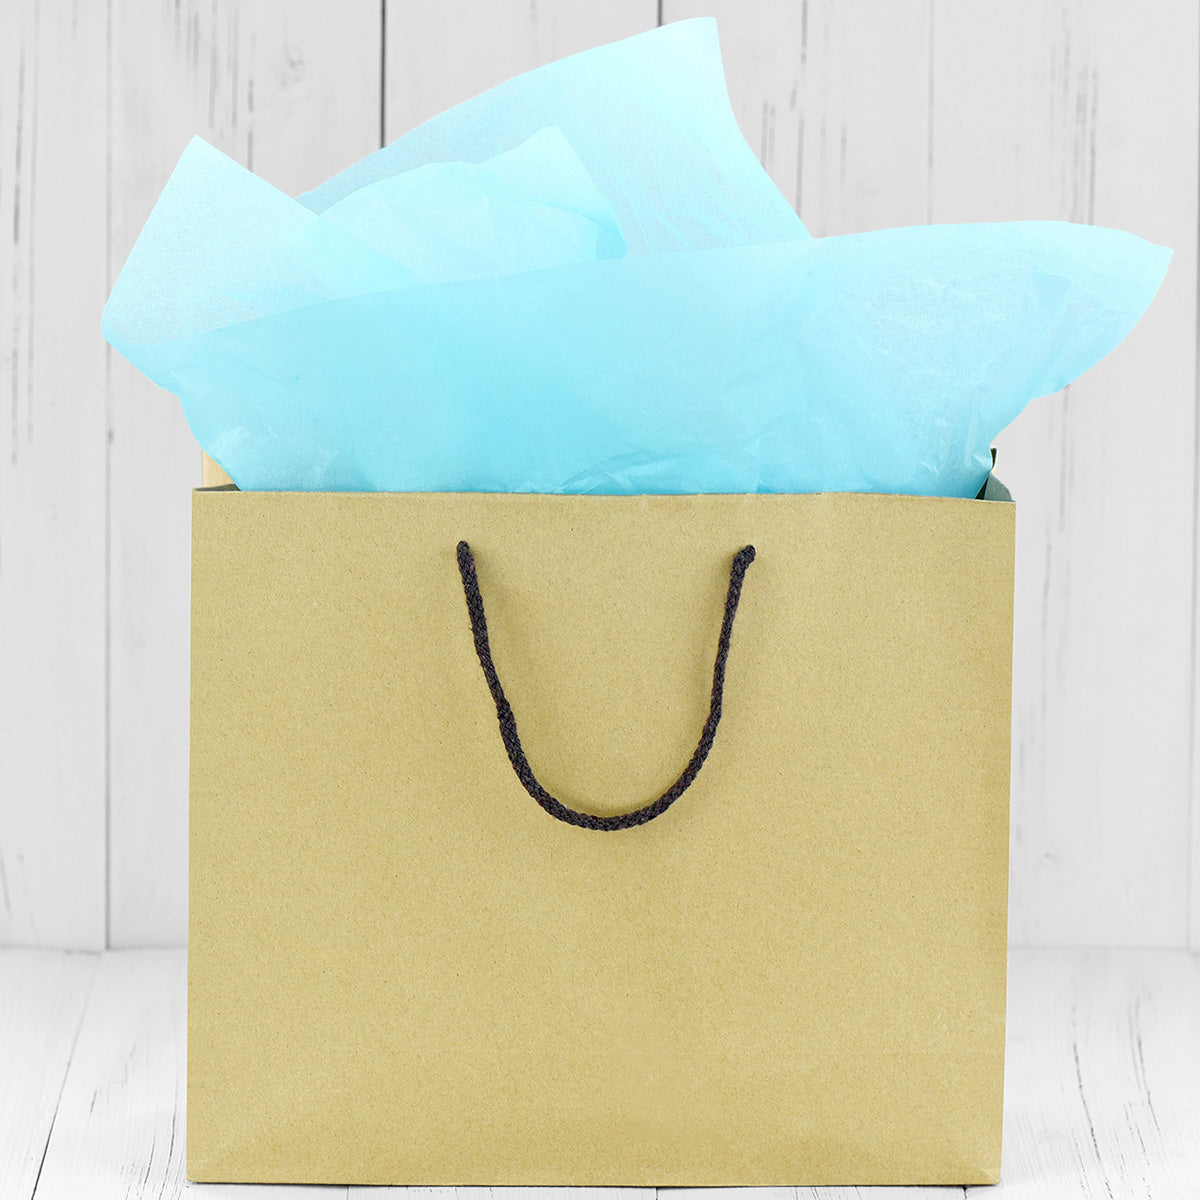 50 Sheets Light Blue Wrapping Tissue Paper